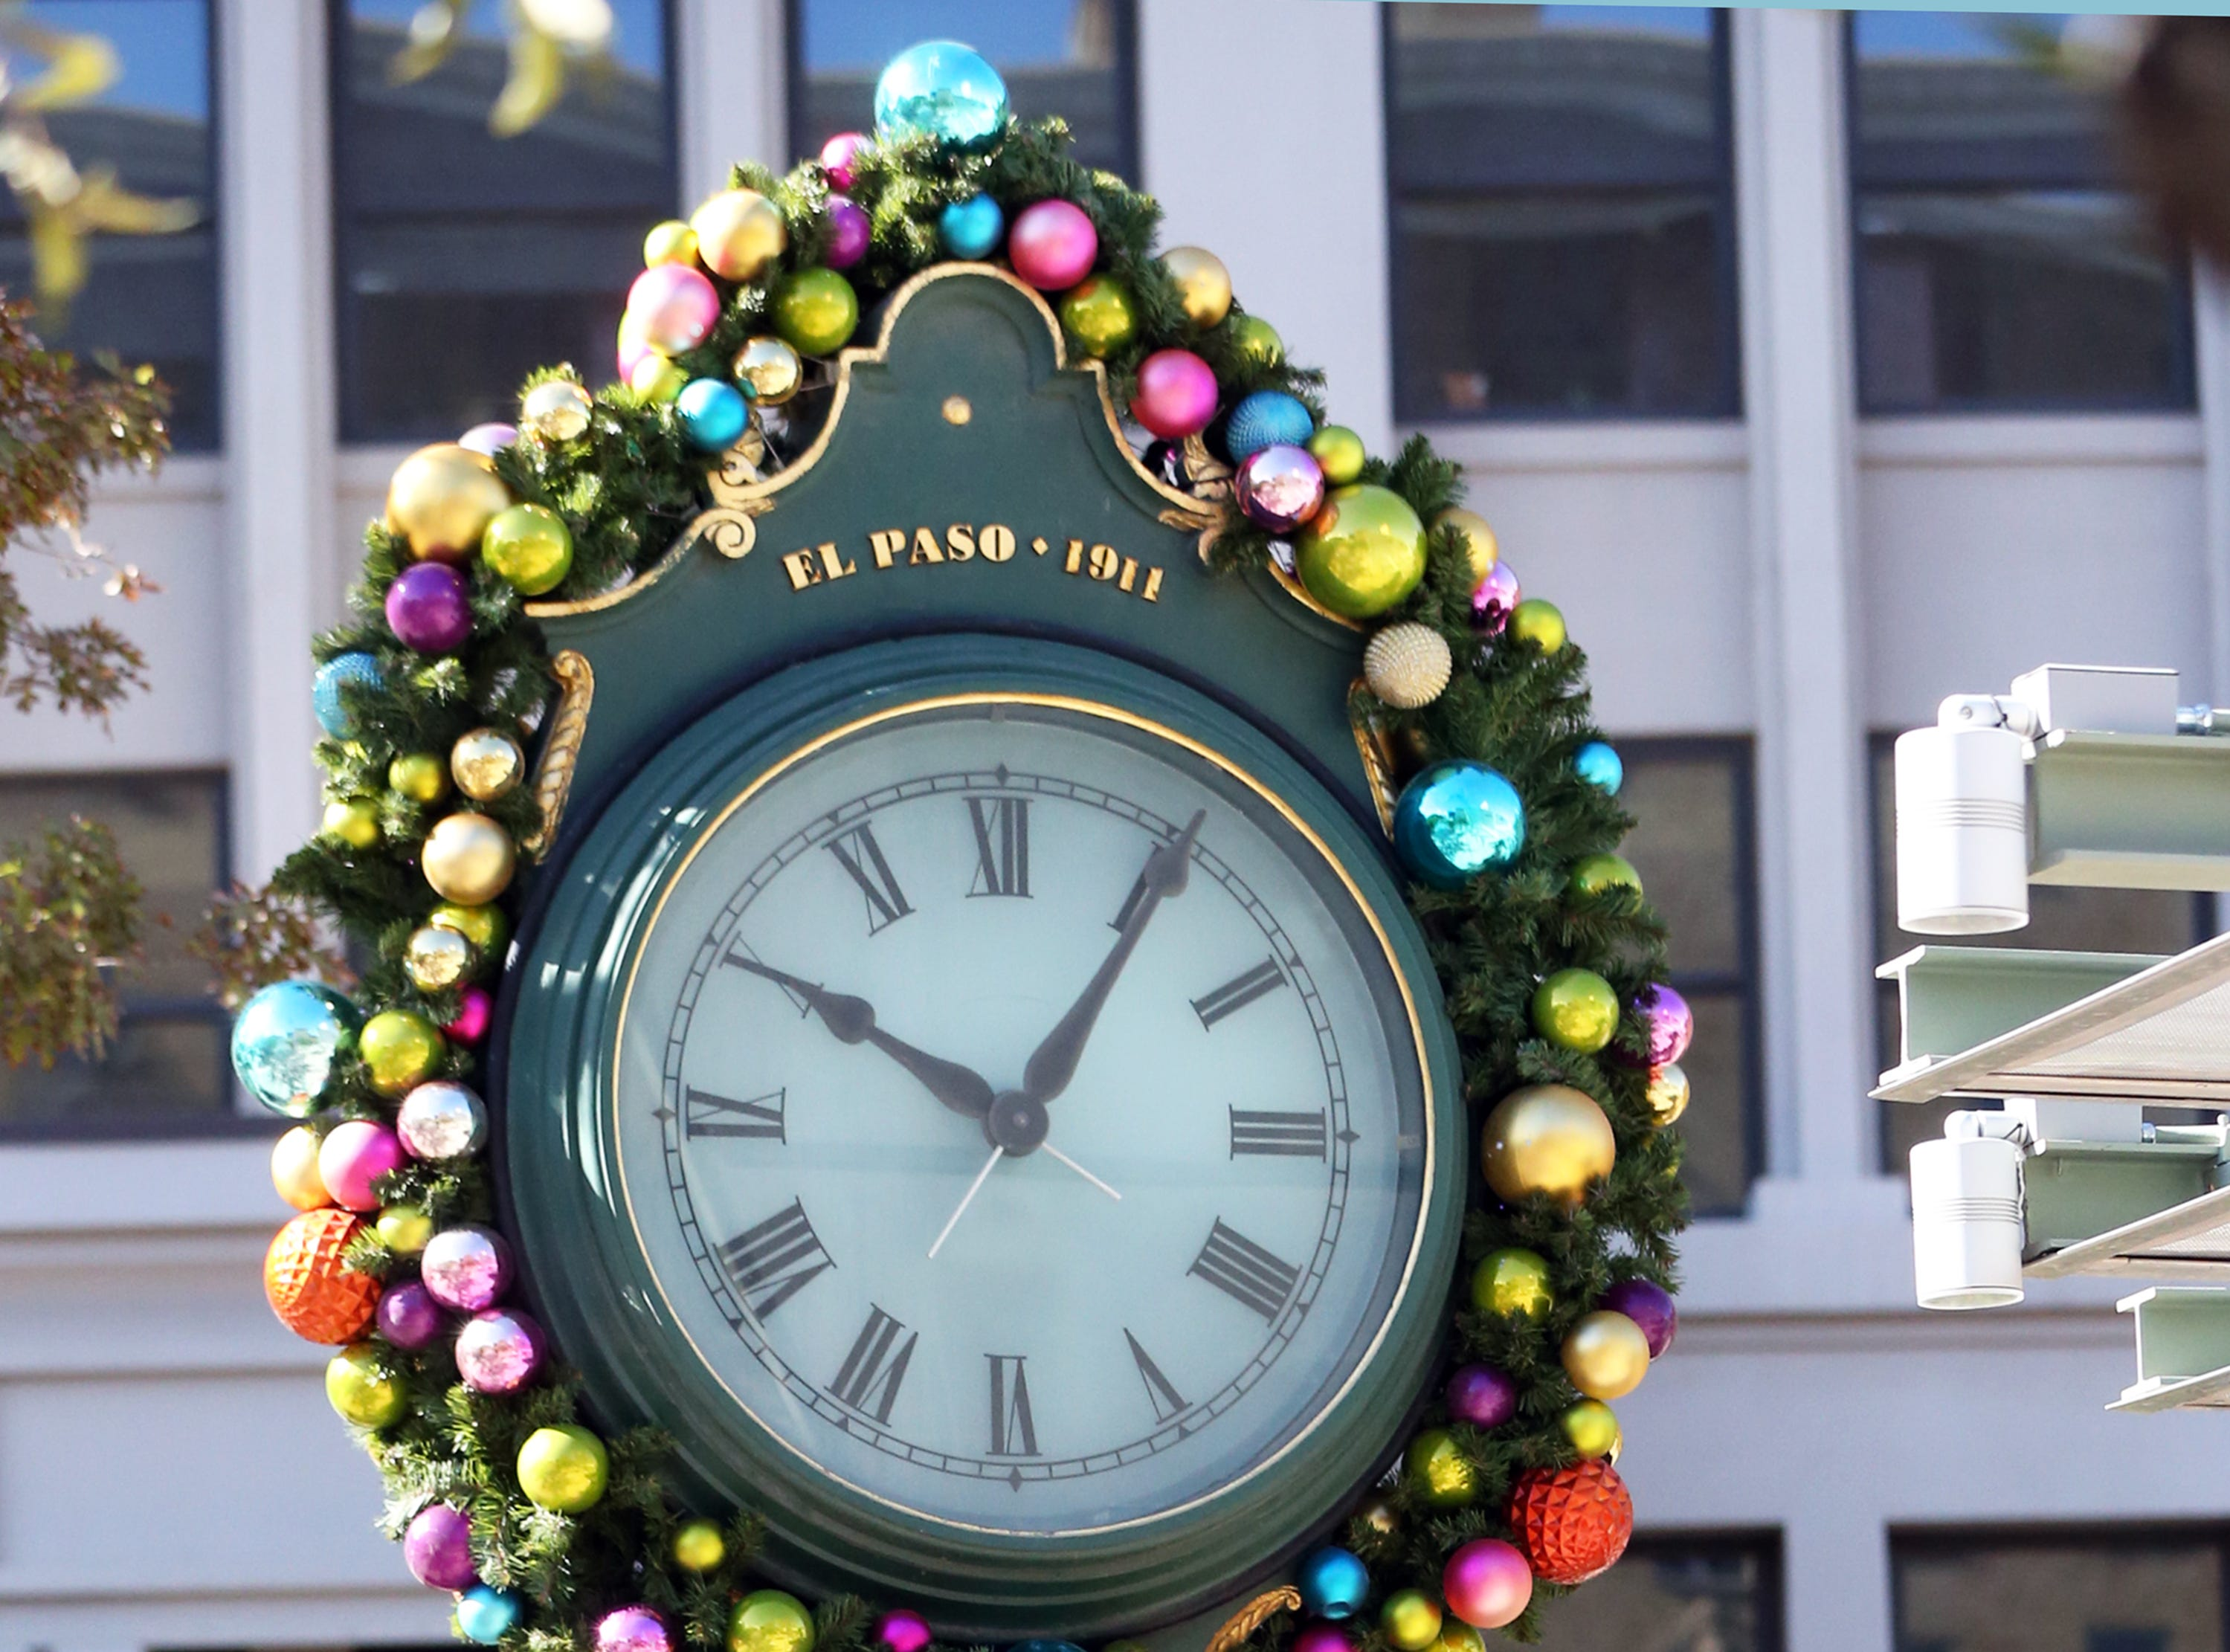 The city's historic town clock in San Jacinto Plaza is decorated for the Christmas holiday season.